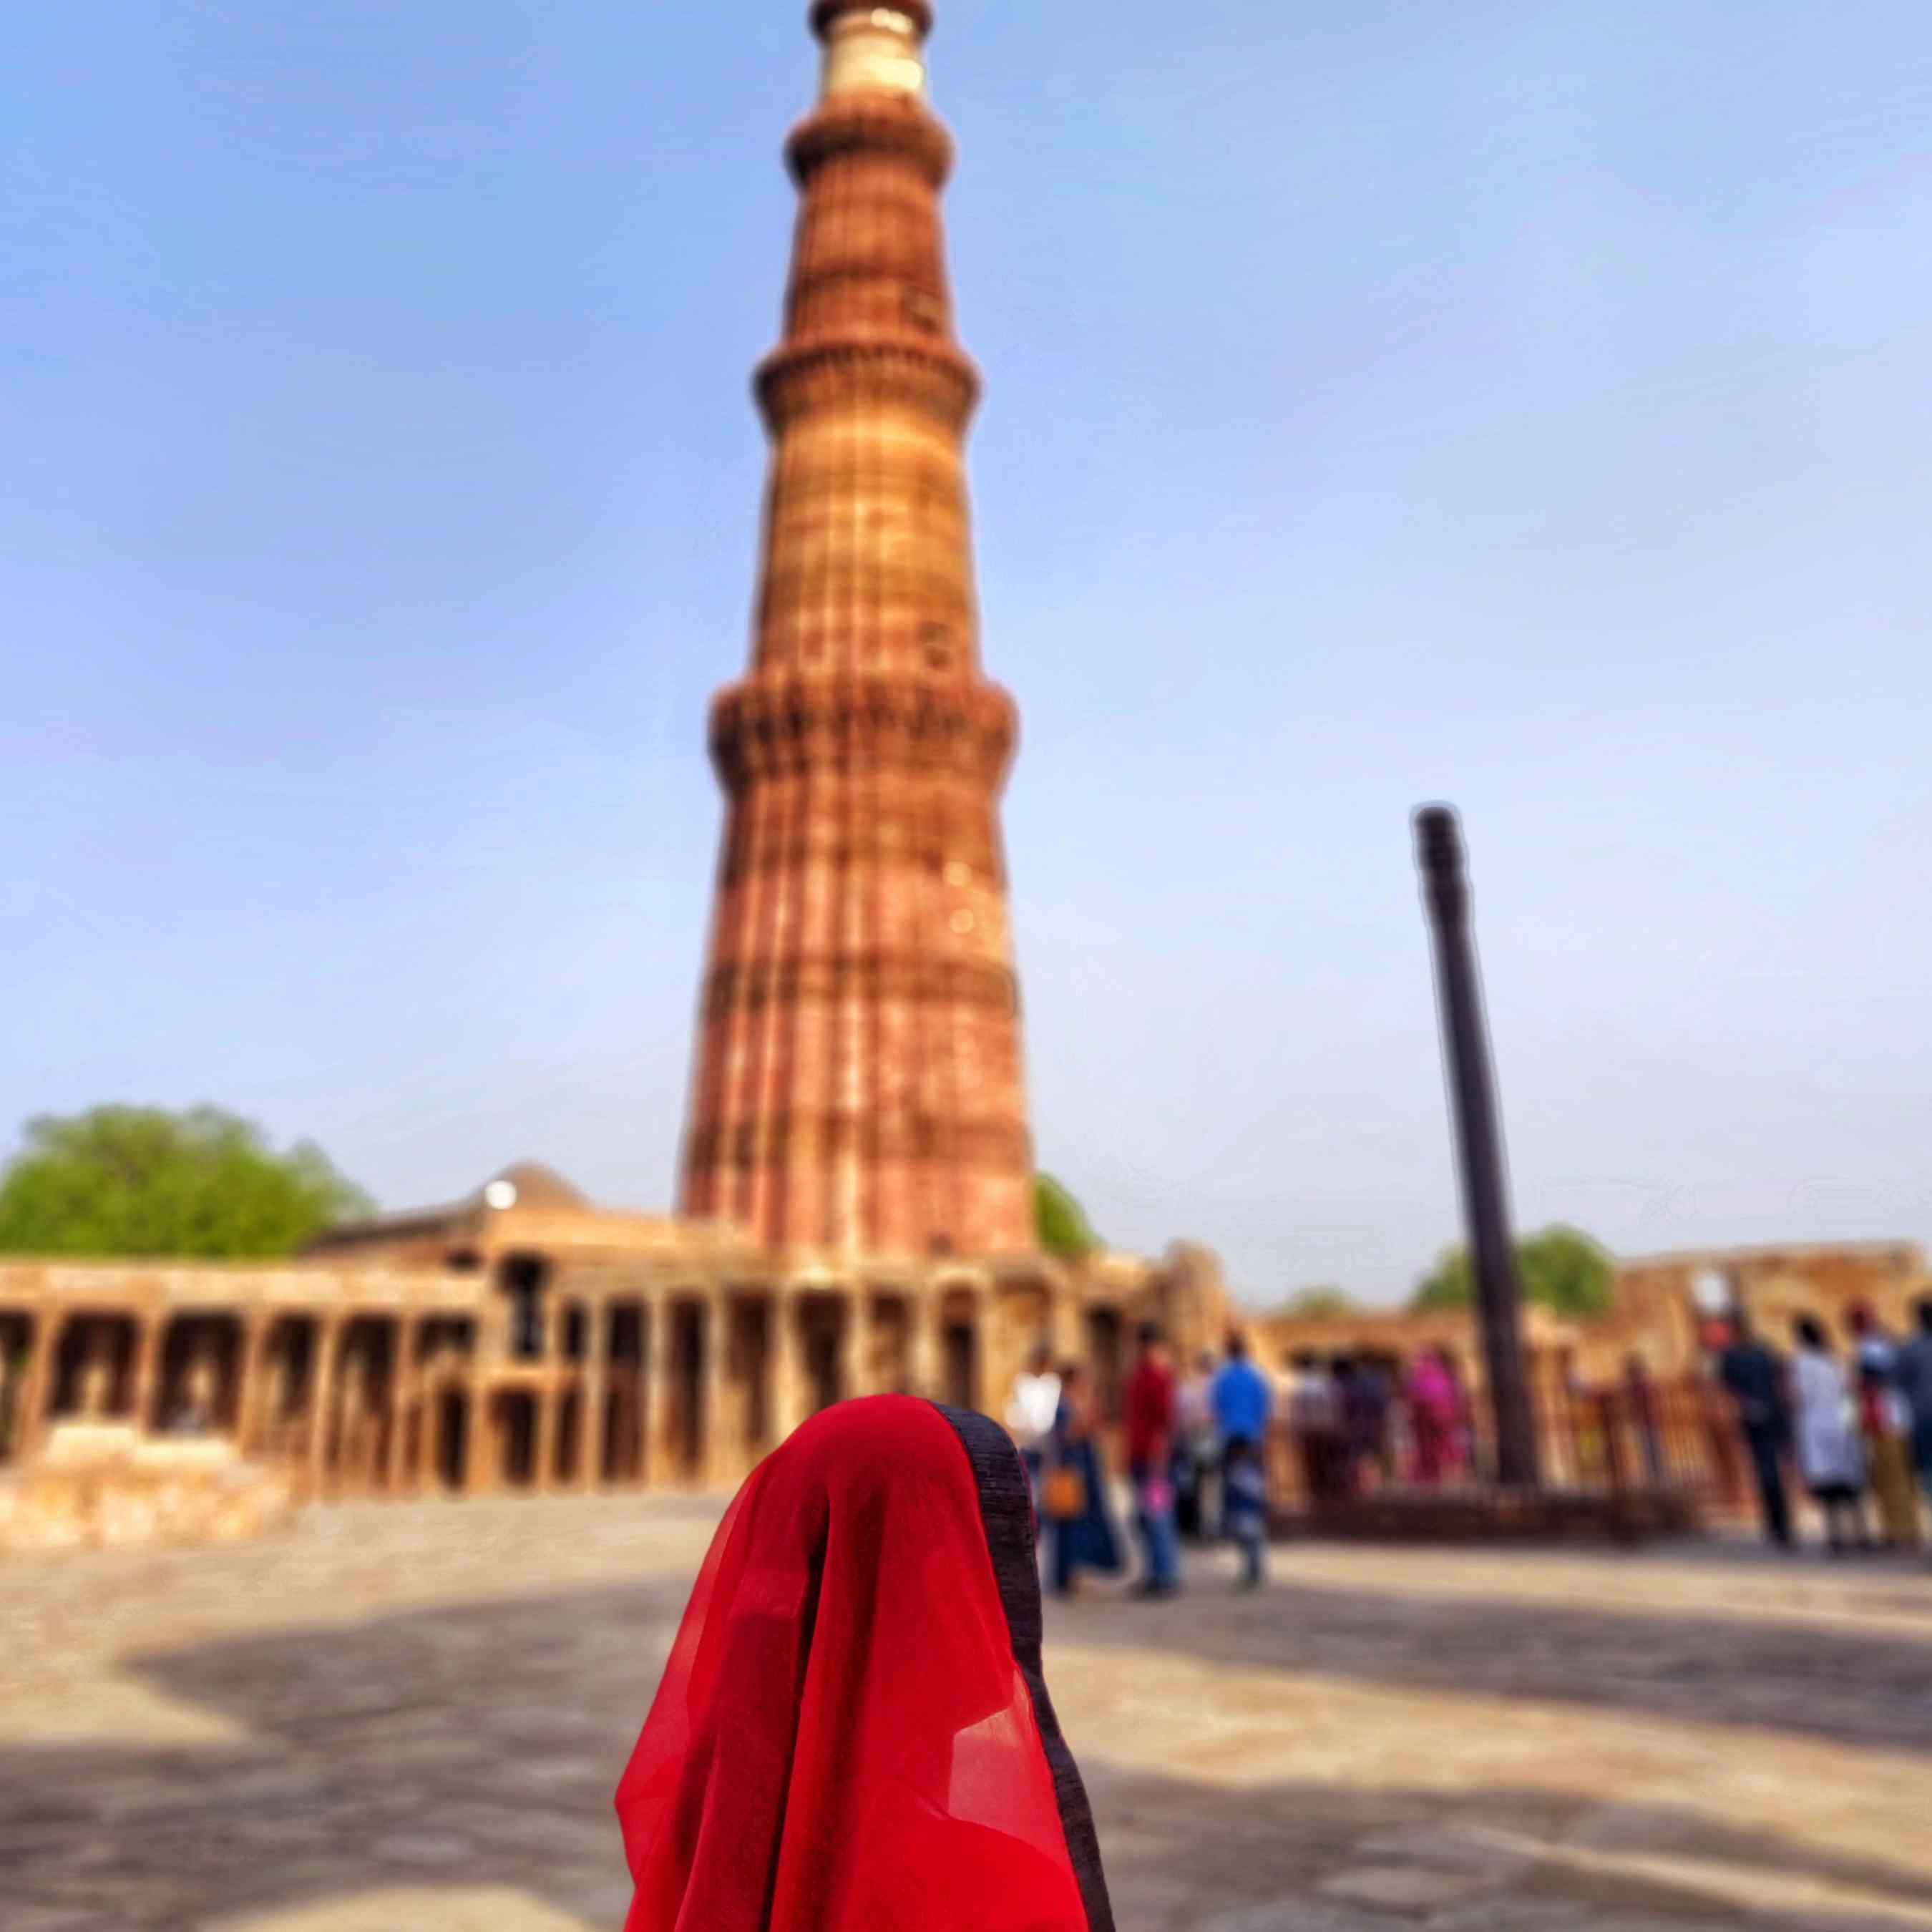 A woman in a red headscarf standing in front of the Qutab Minar